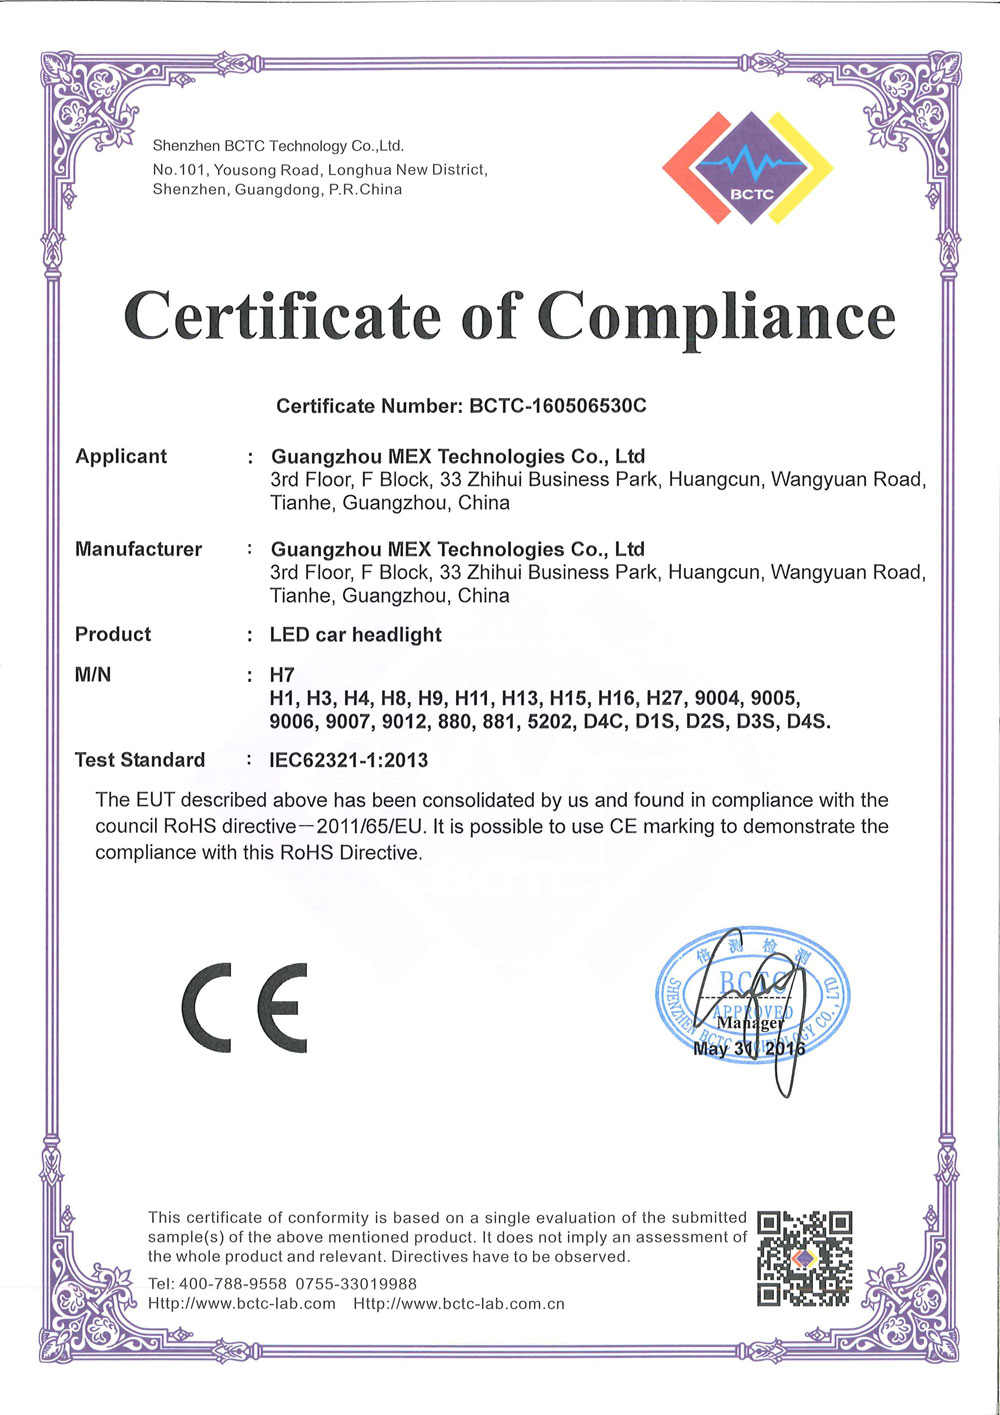 Rohs certificate of compliance guangzhou mex zmpczm016000 13 03 certificate of compliance for Certificate of compliance template